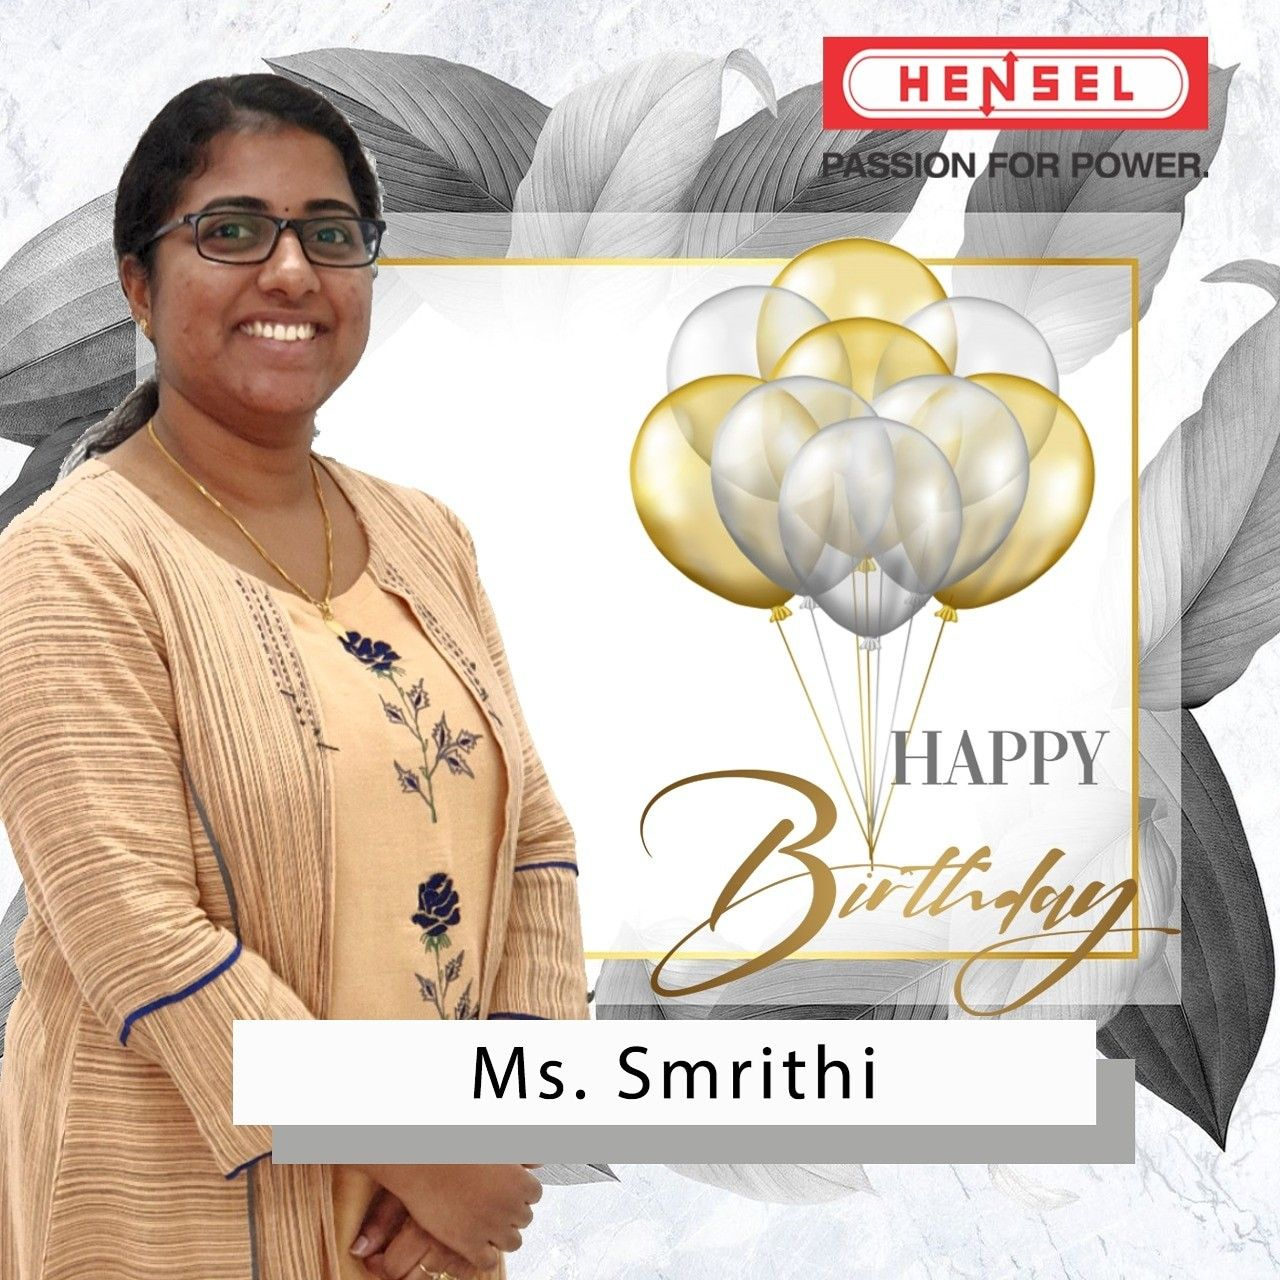 Happy Birthday Ms. Smrithi. May God bless you with good